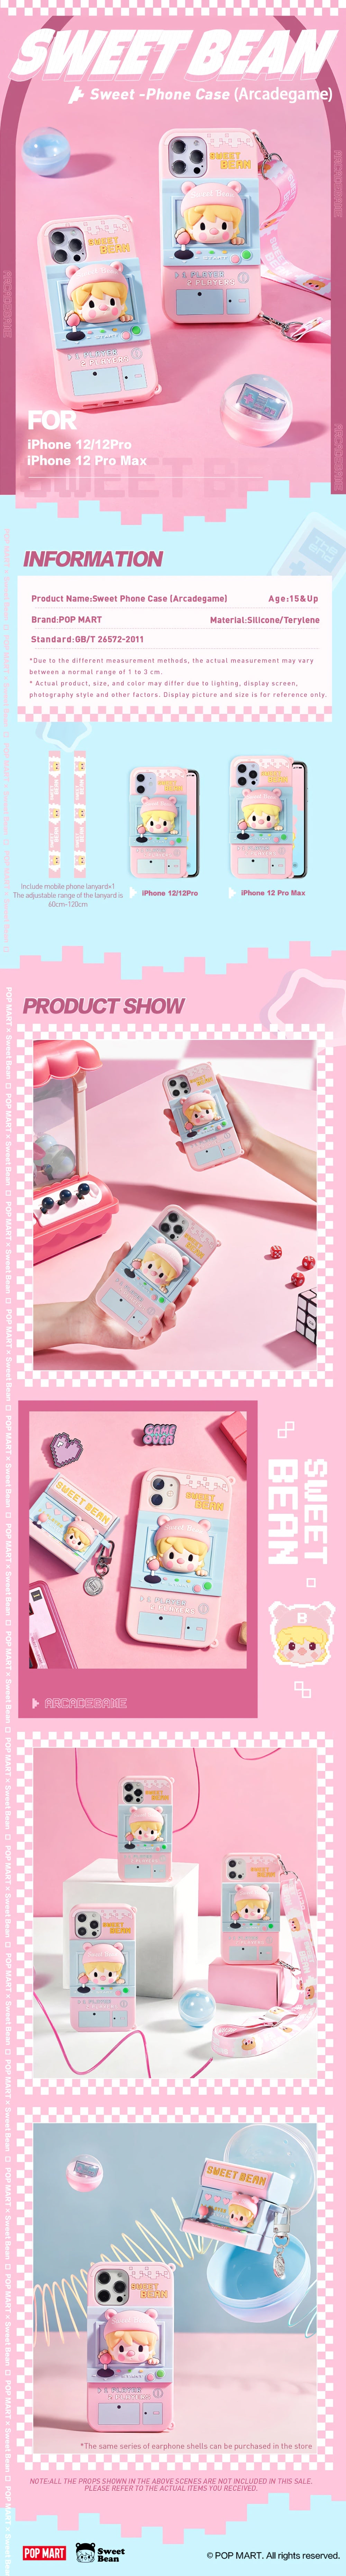 Pop Mart Sweet Bean Arcade Game  Phone Case For iPhone 12/12PRO 12 Pro Max